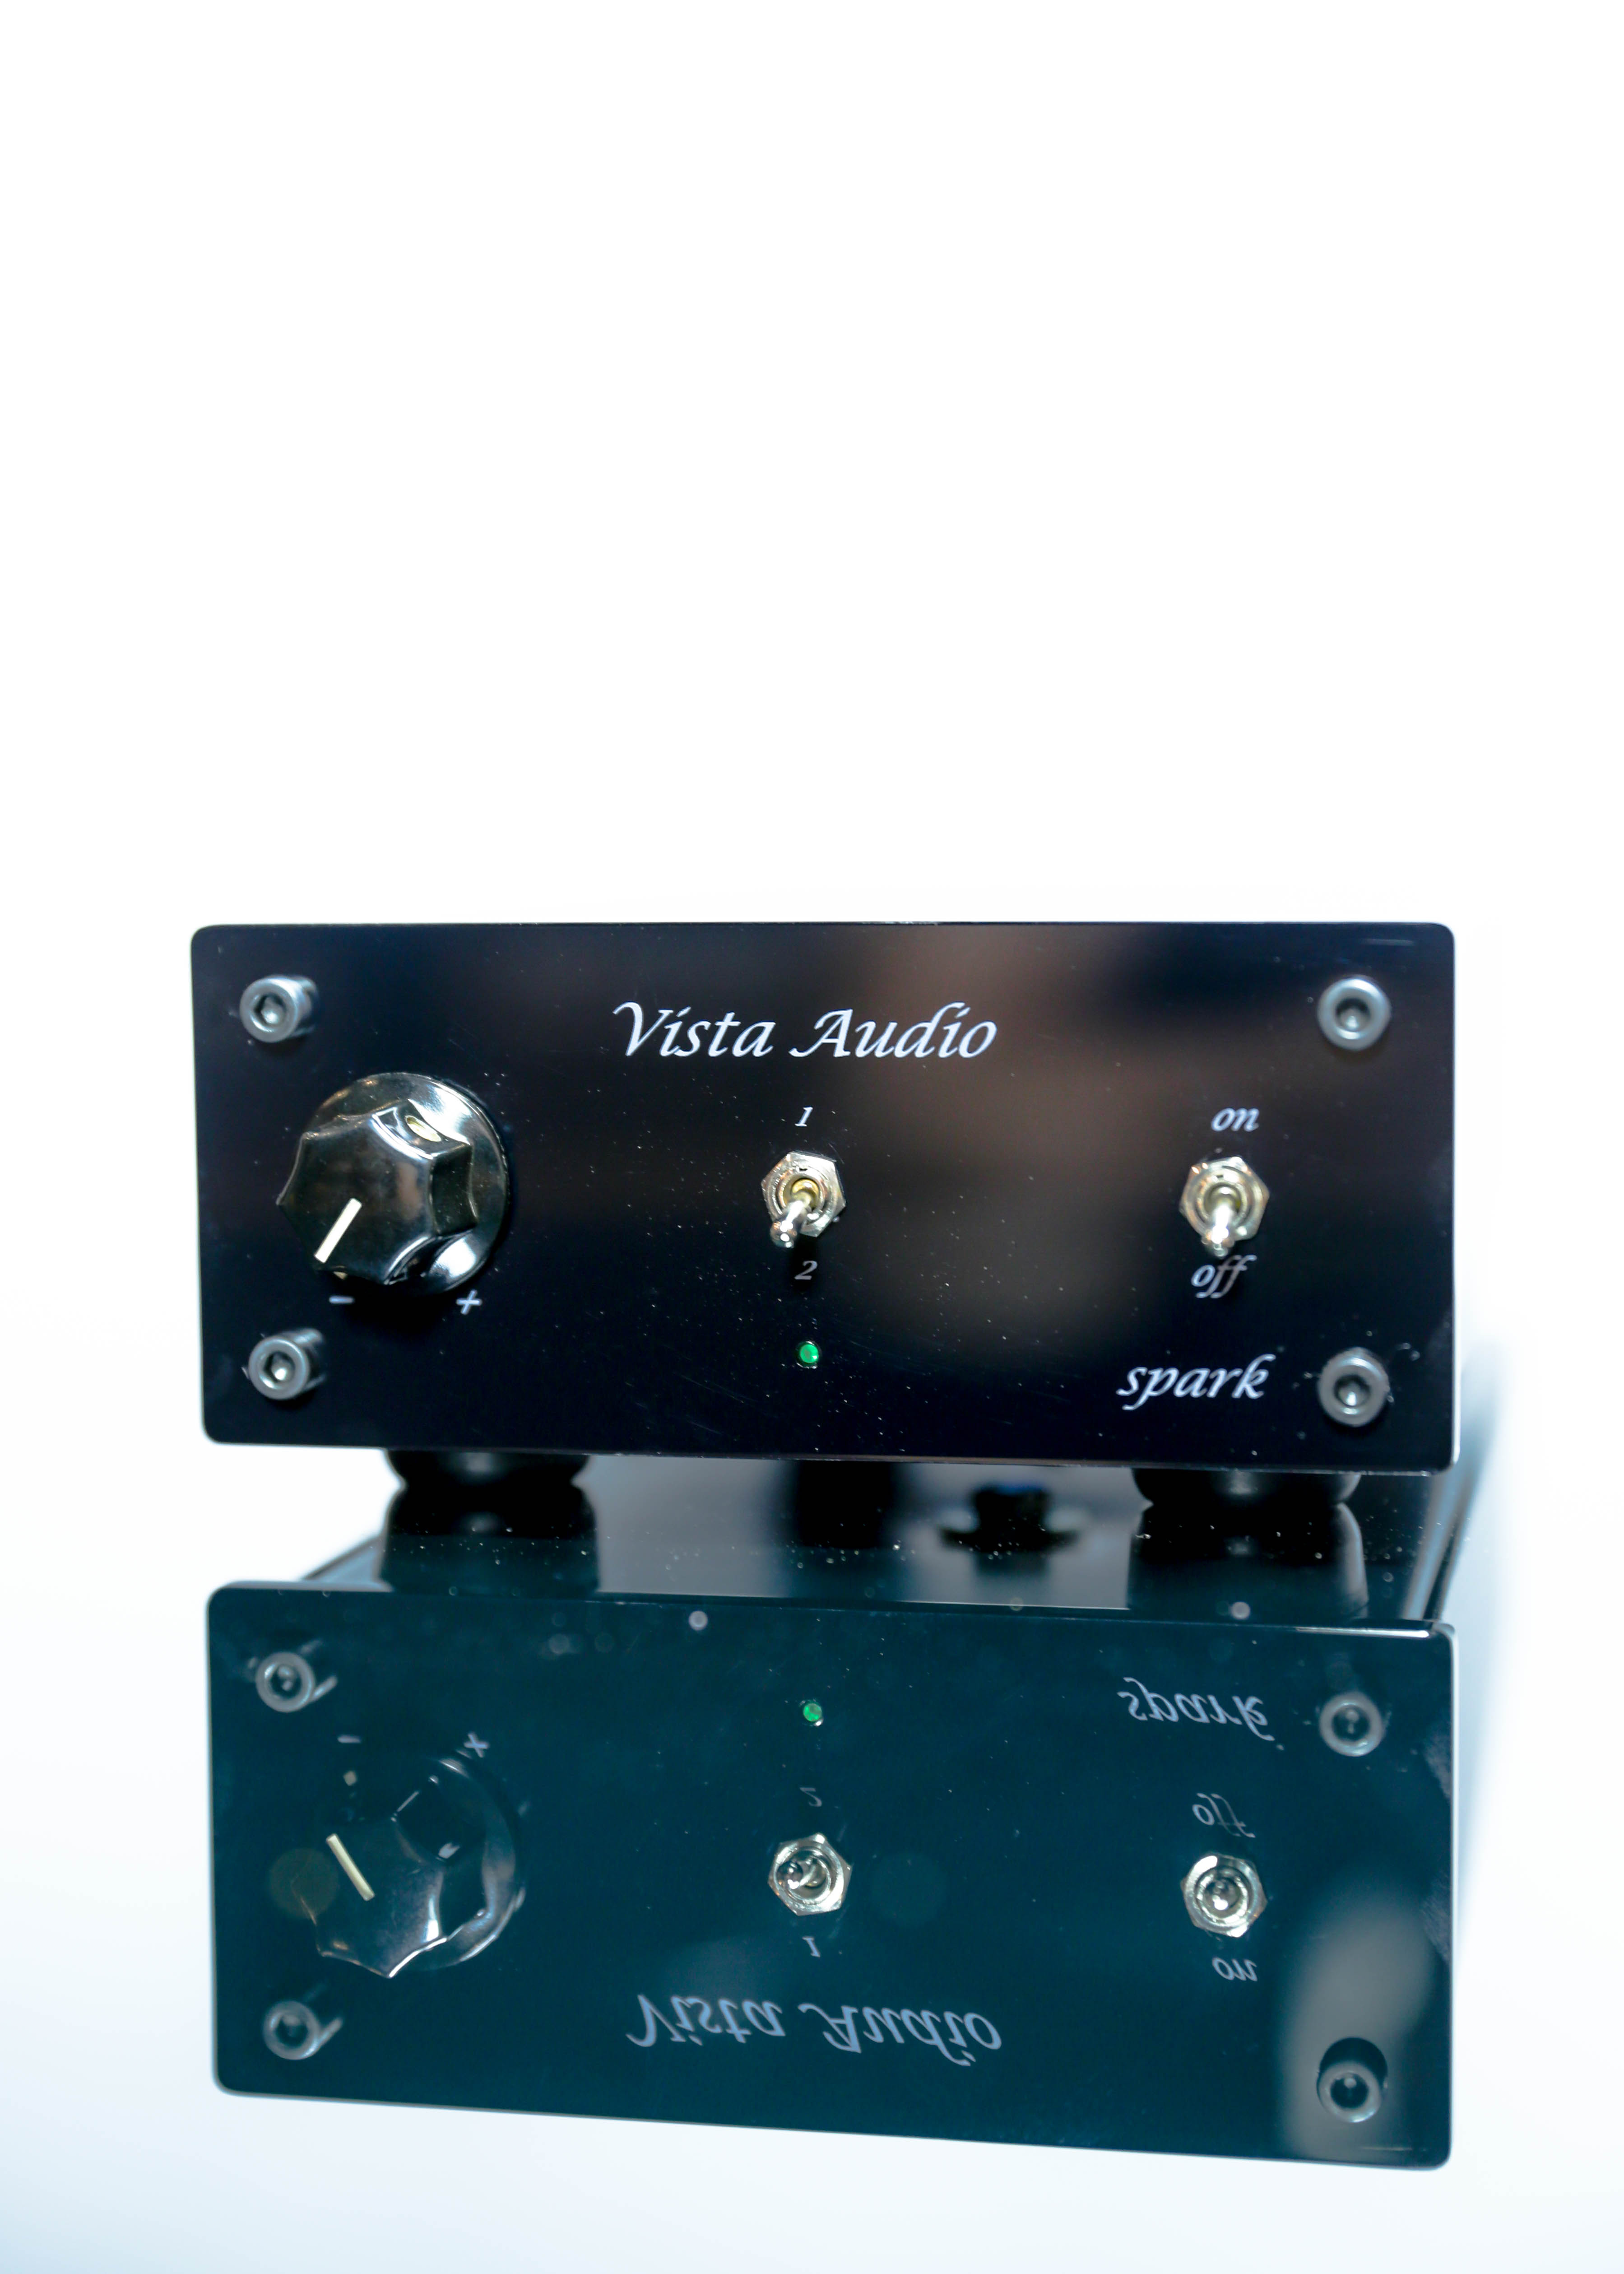 ampli Vista Audio Spark